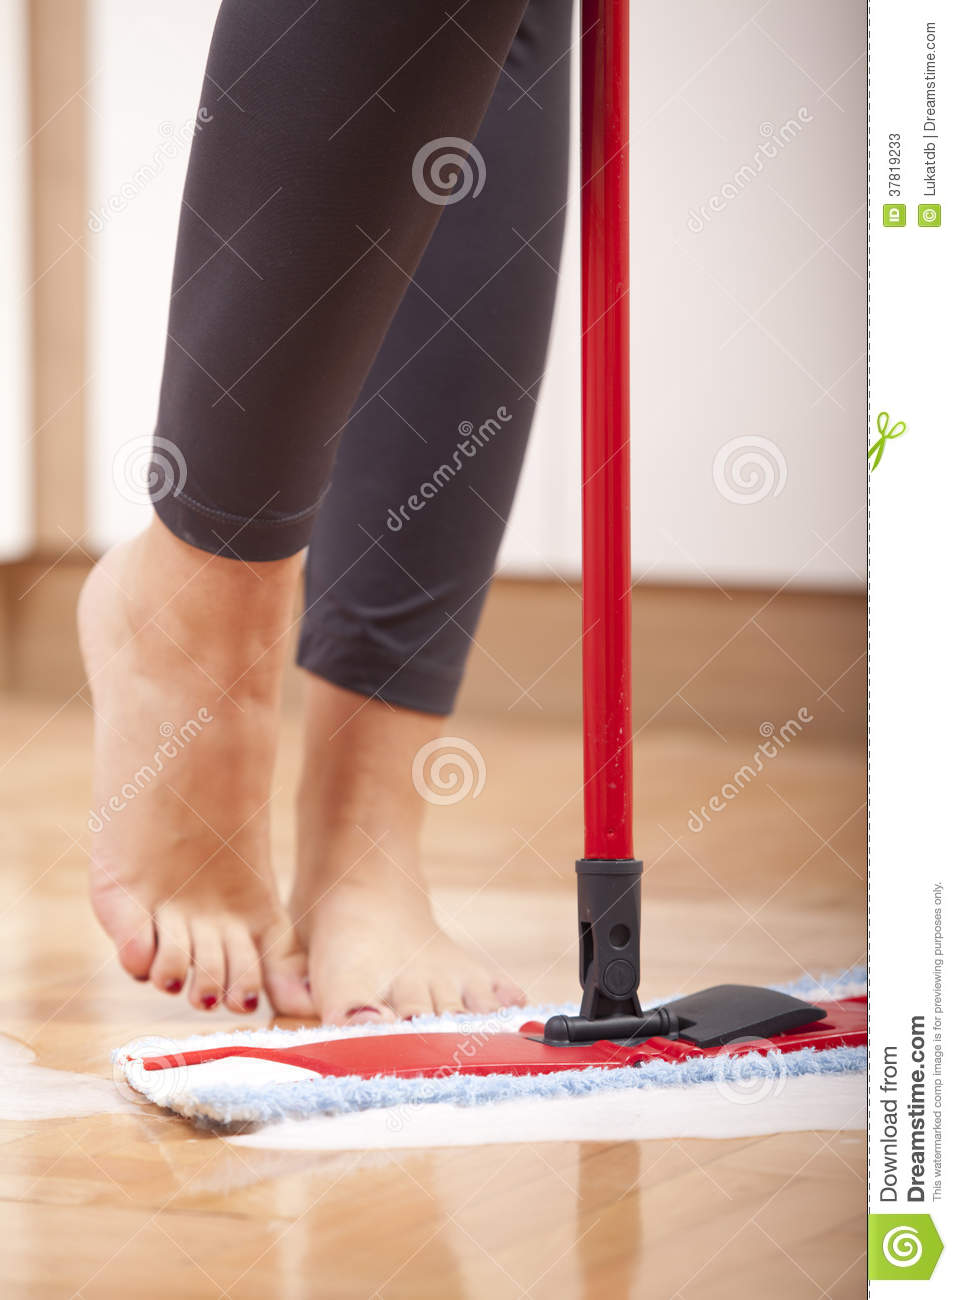 House cleaning stock photos image 37819233 for House cleaning stock photos